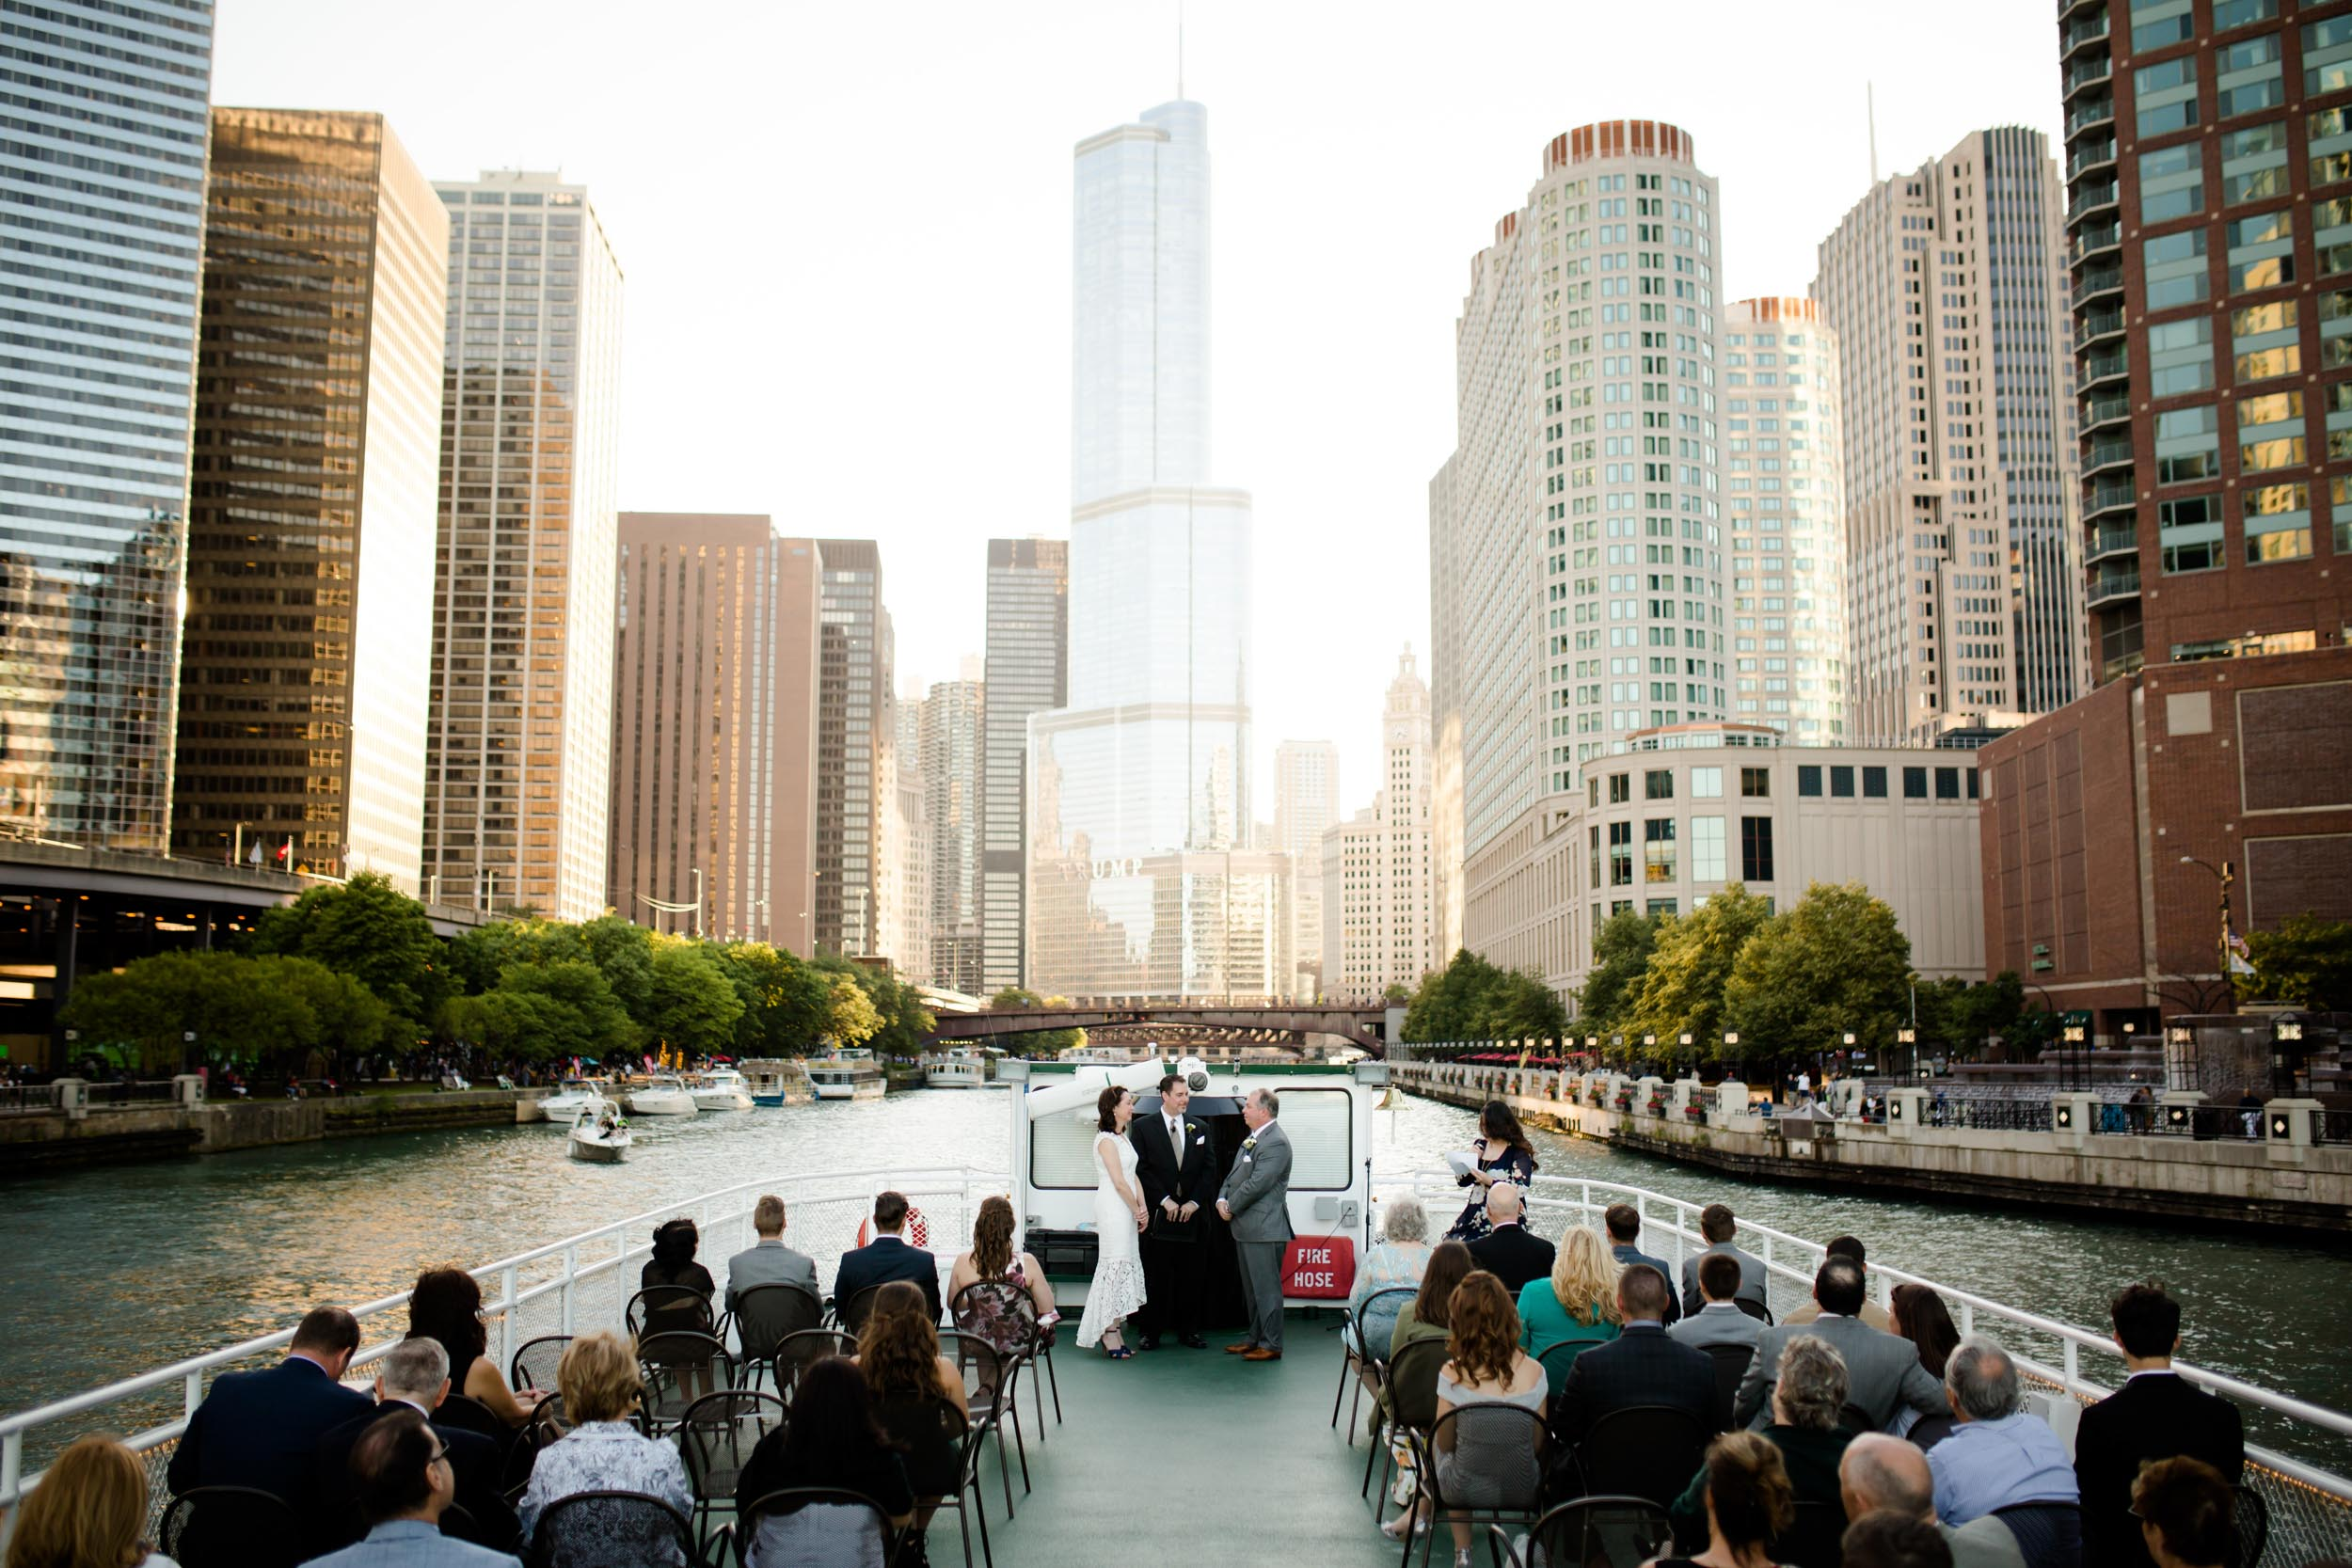 Boat wedding on the Chicago River